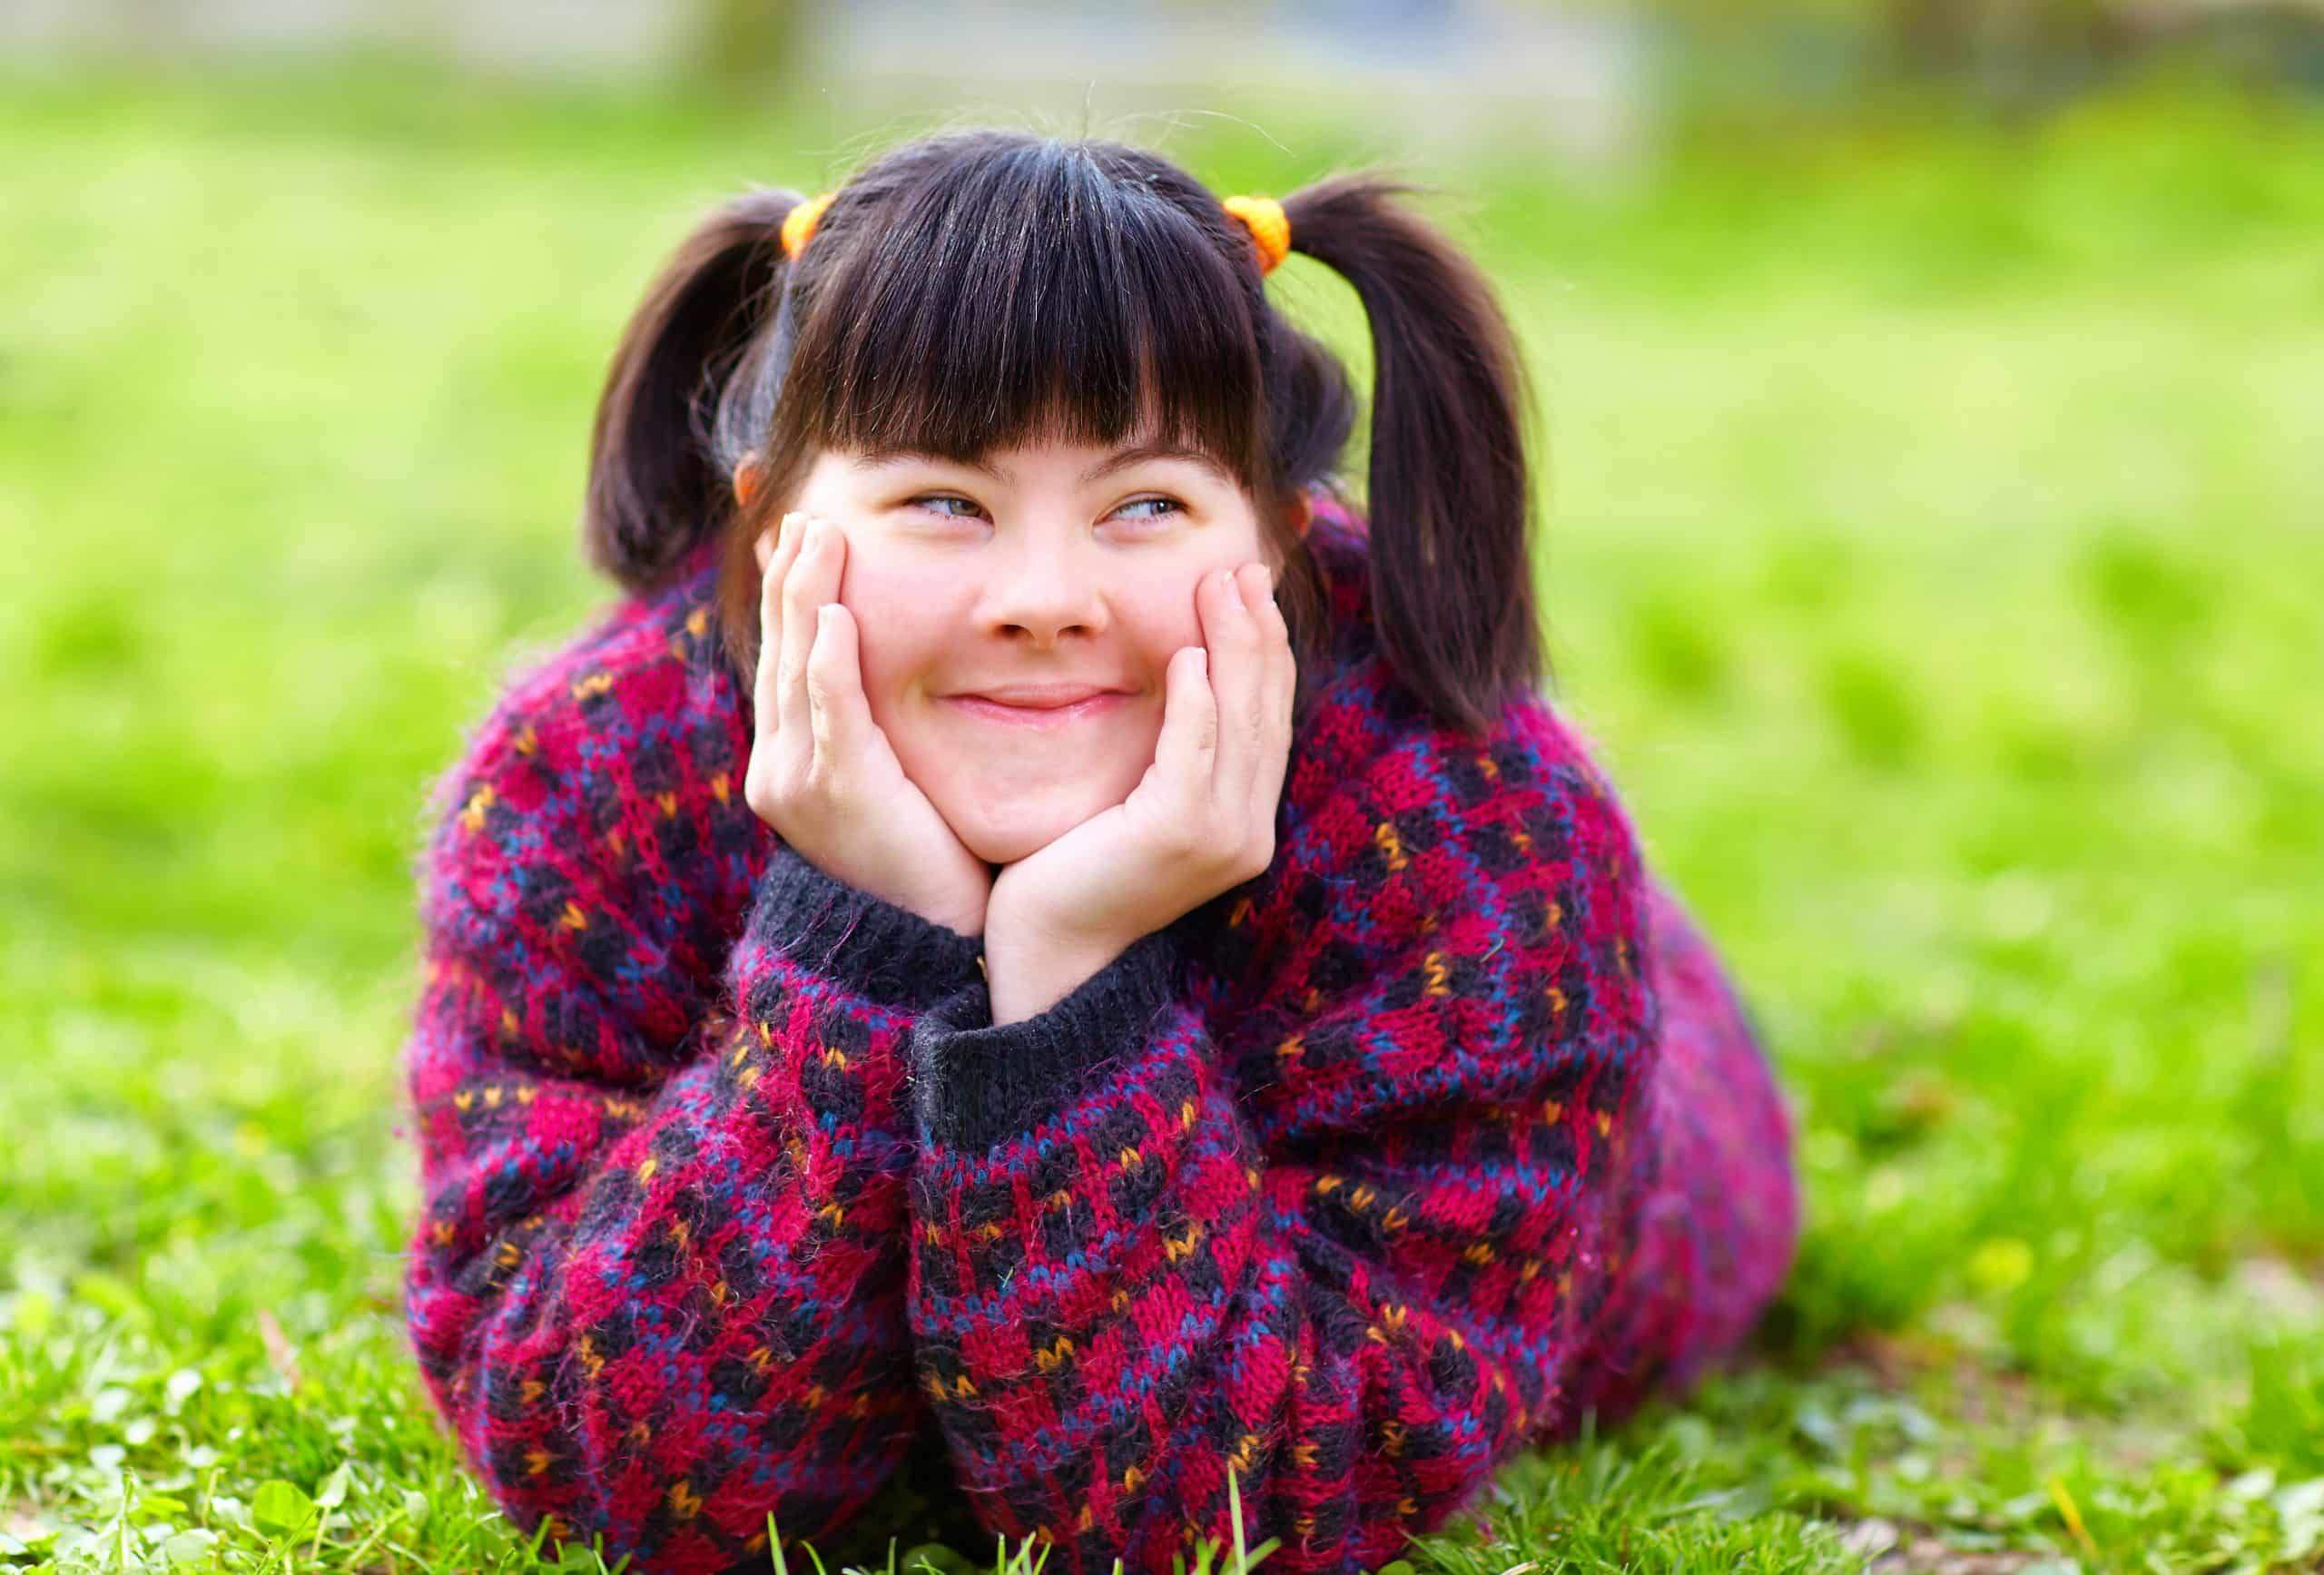 image of girl with downs syndrome